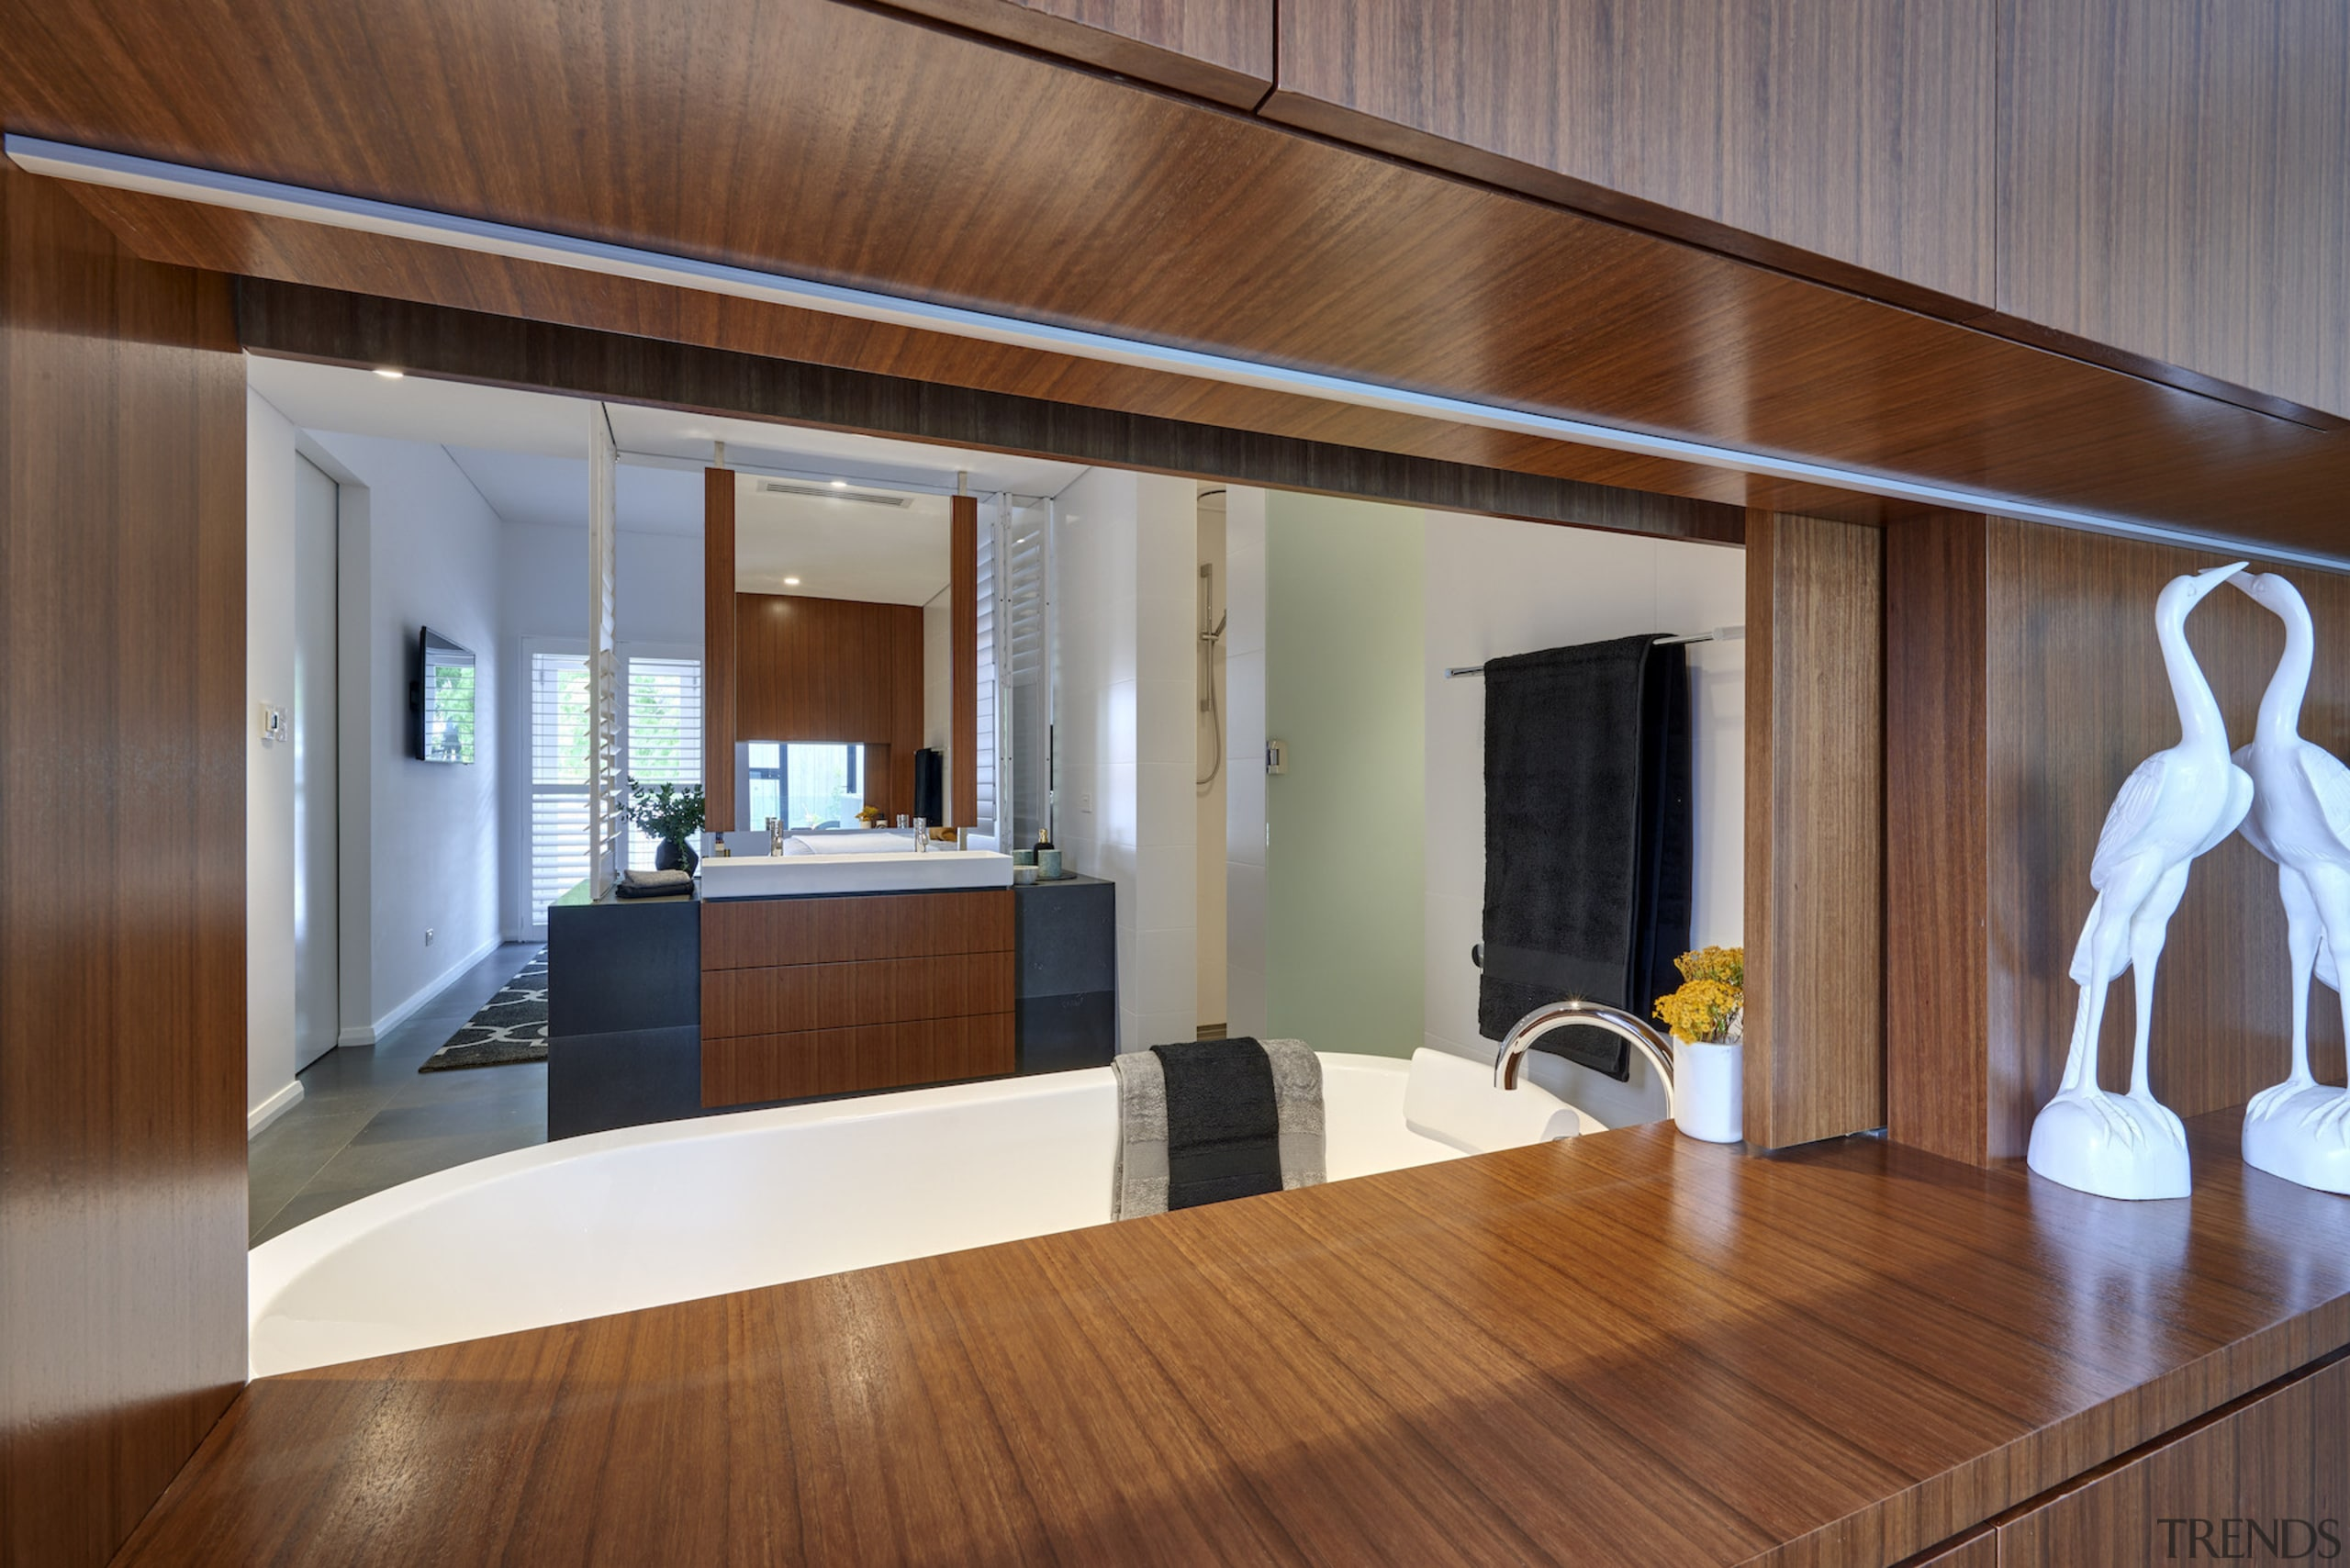 Extended sightlines run right across this master suite architecture, floor, flooring, hardwood, house, interior design, room, wood, wood flooring, brown, gray